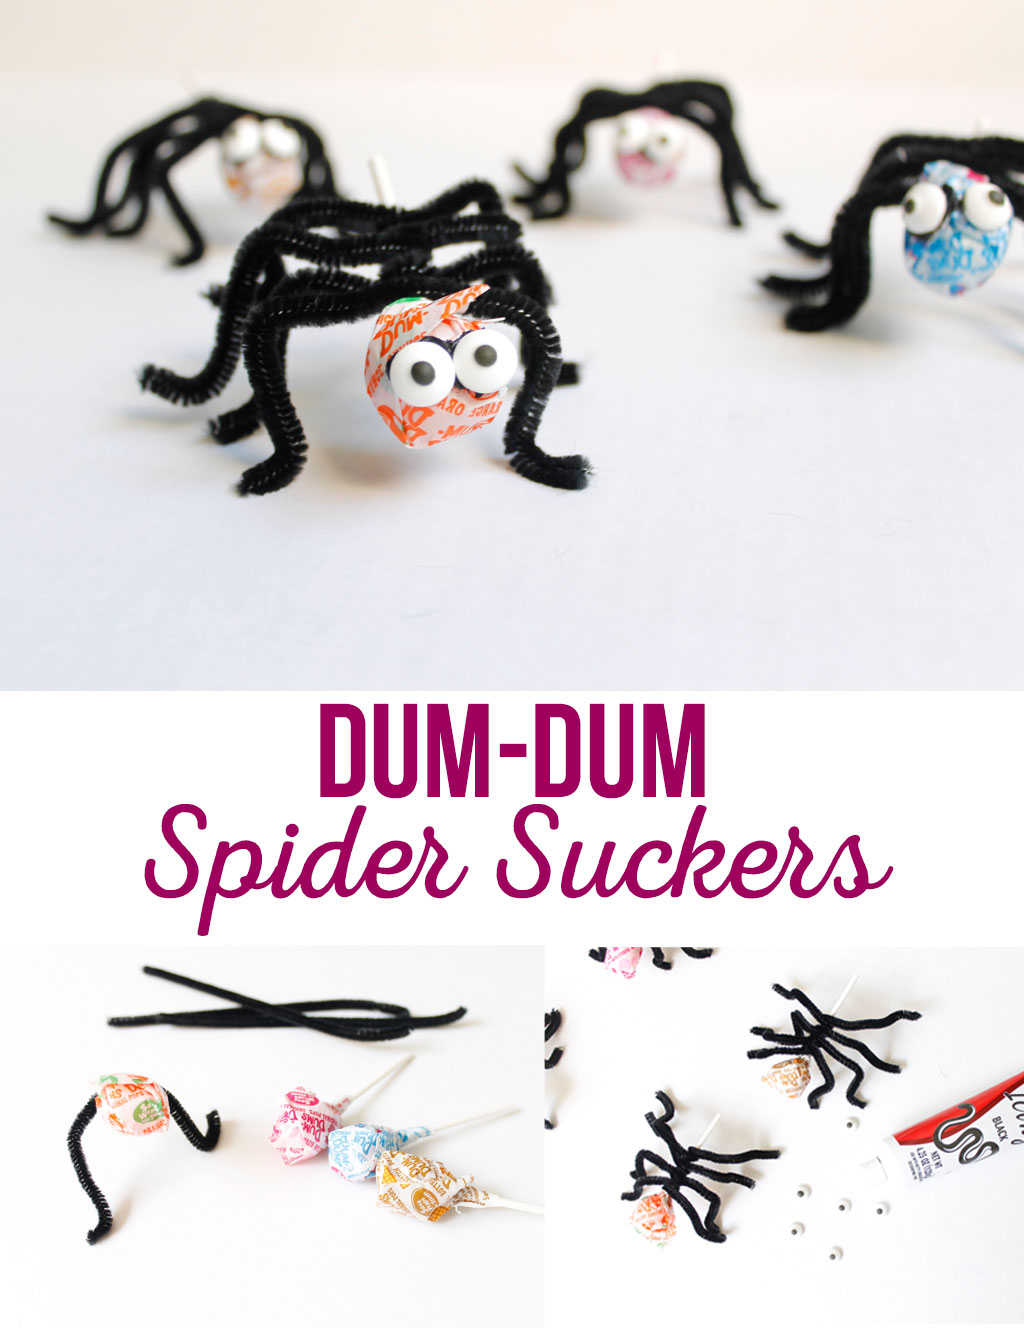 Dum-Dum Spider Suckers